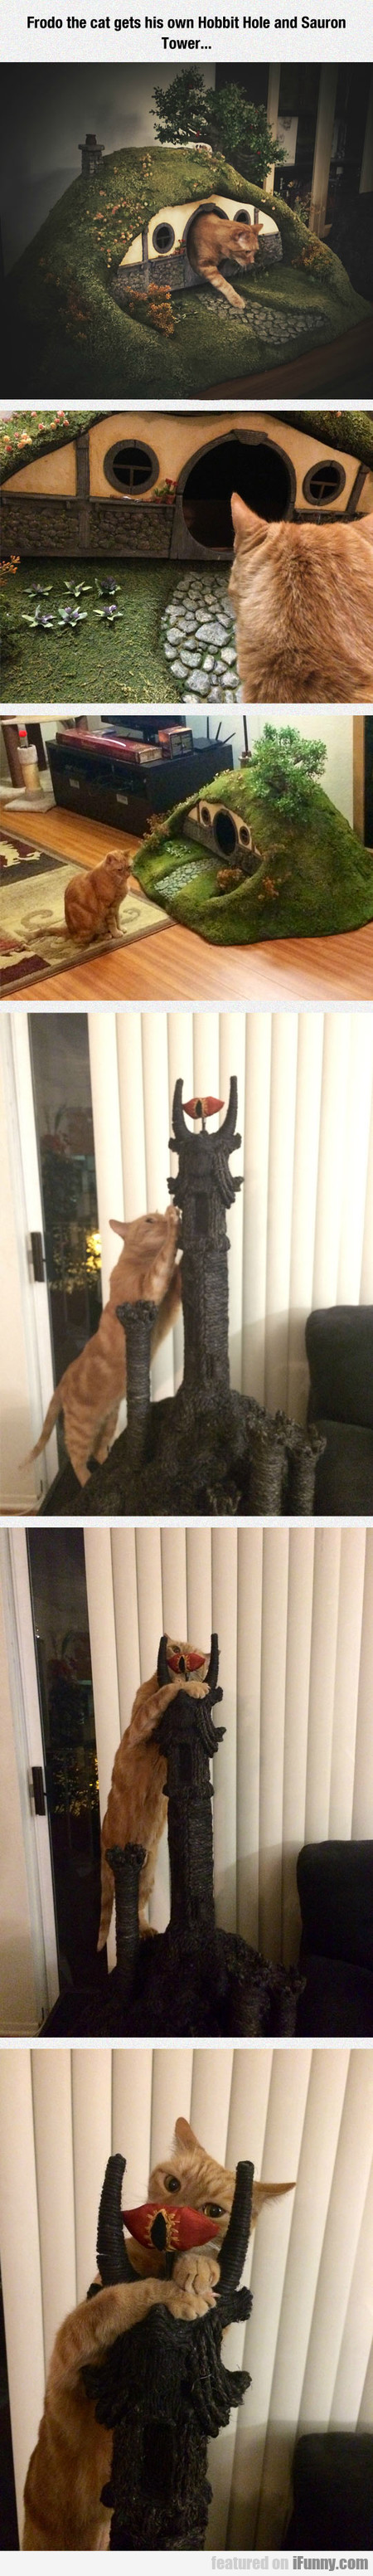 Cat Gets His Own Hobbit Hole And Sauron Tower...